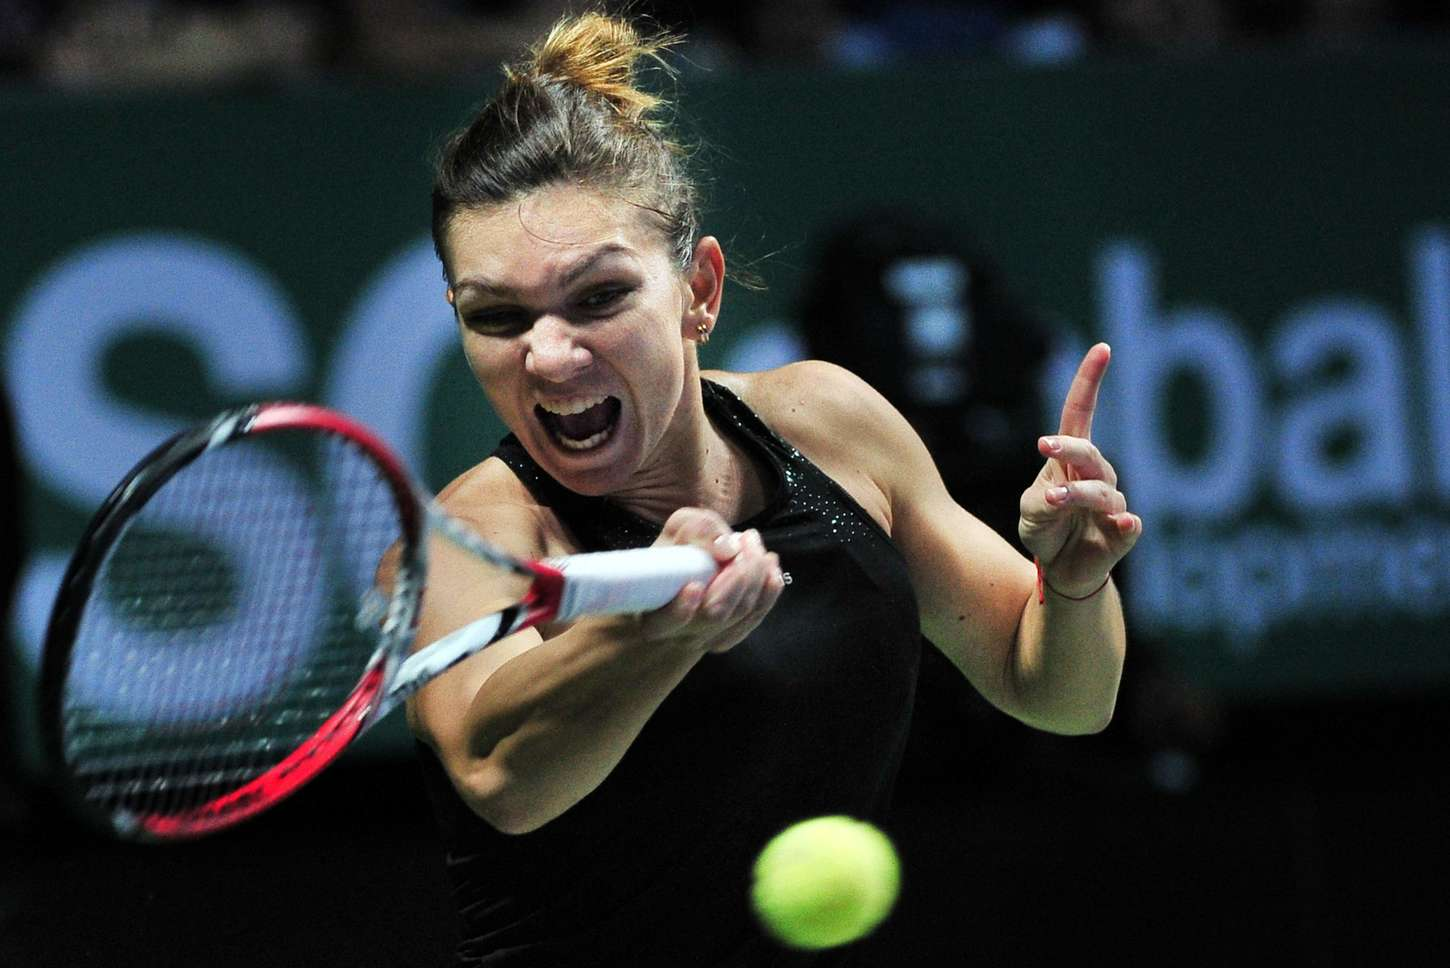 Simona Halep at WTA Finals in Singapore